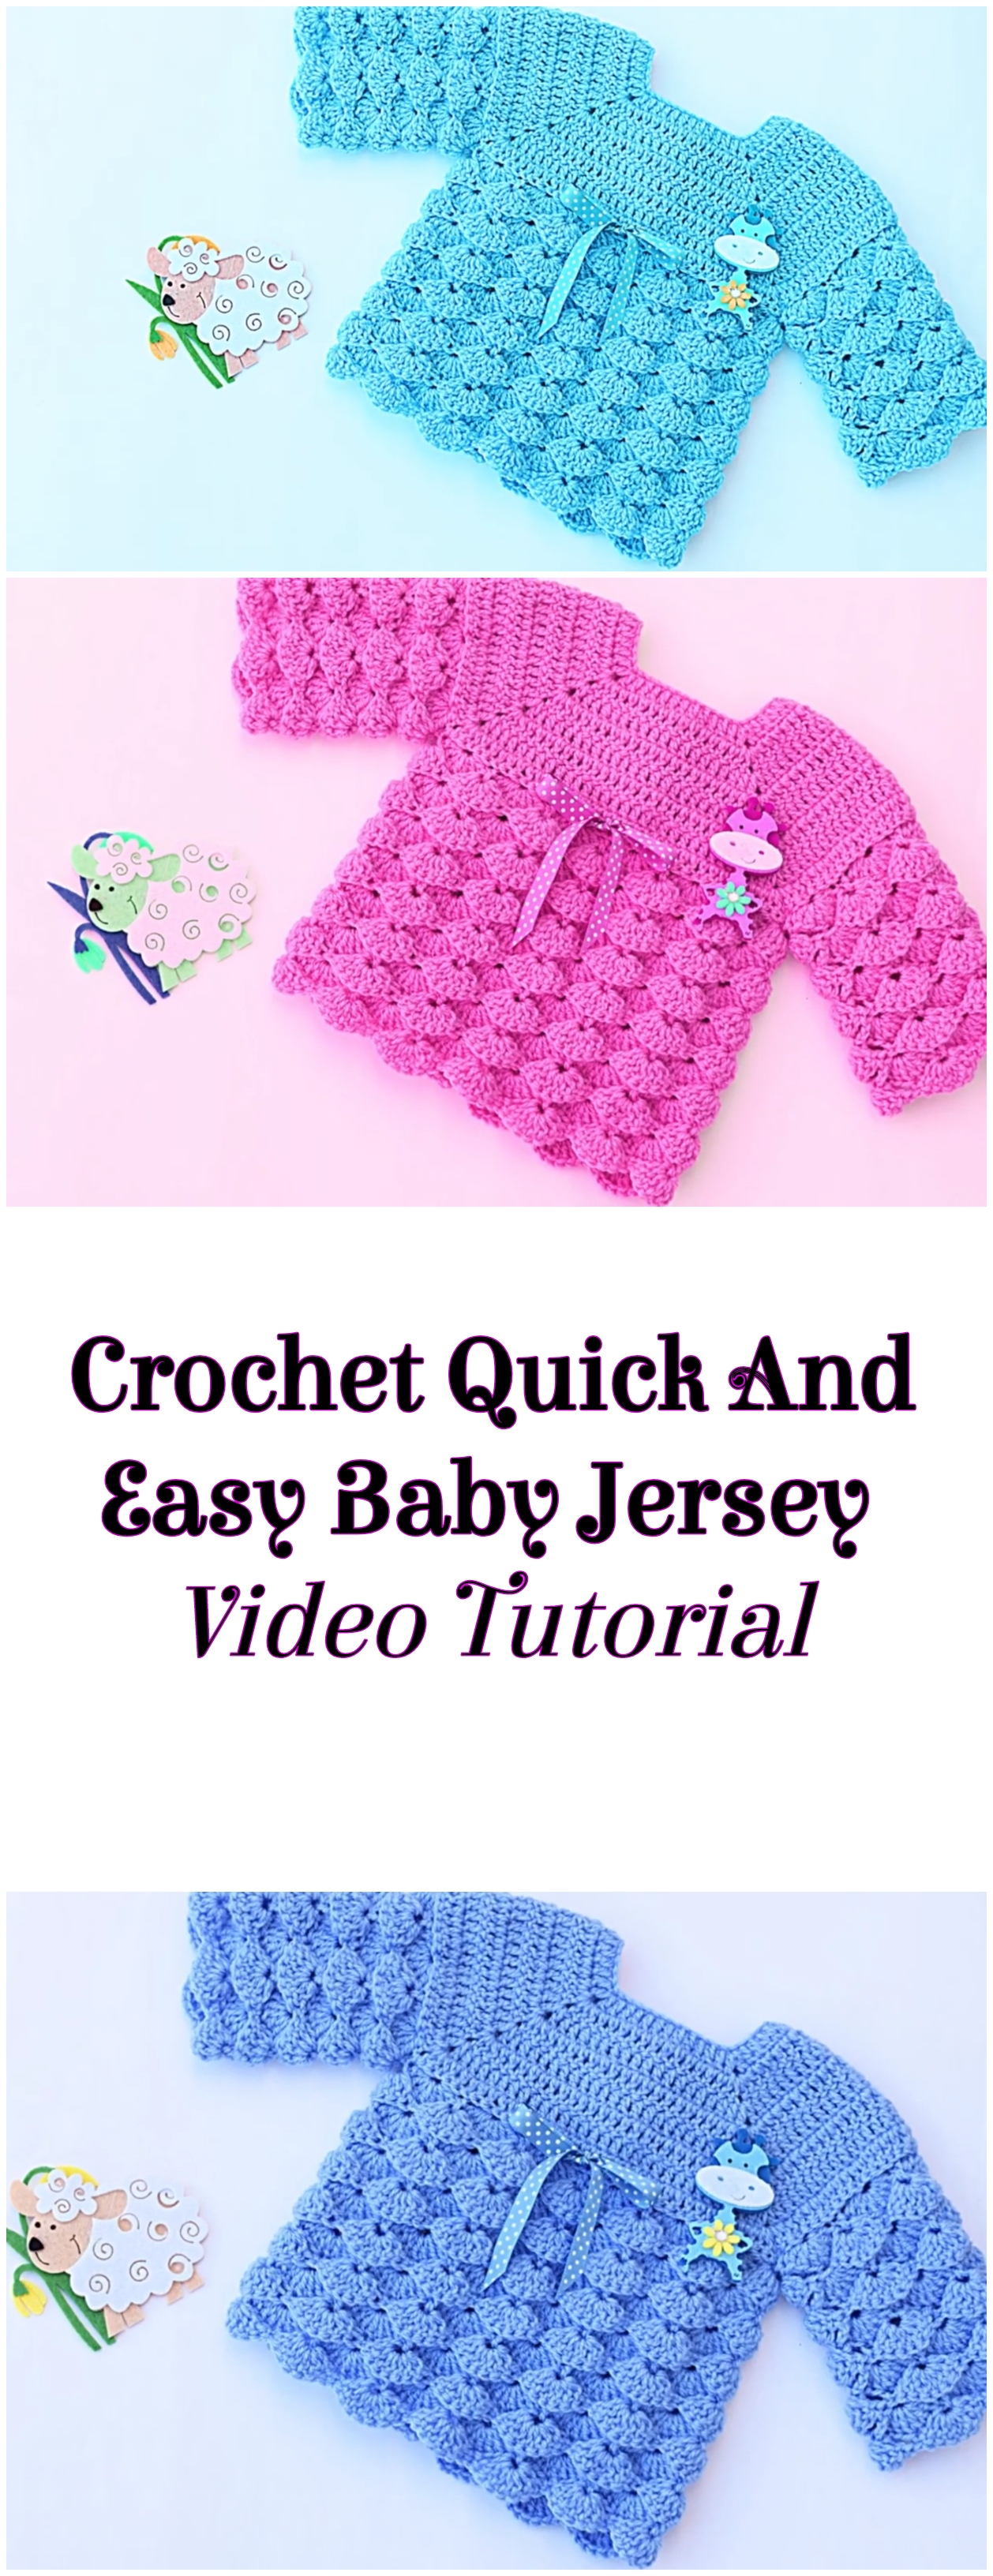 Crochet Quick And Easy Baby Jersey